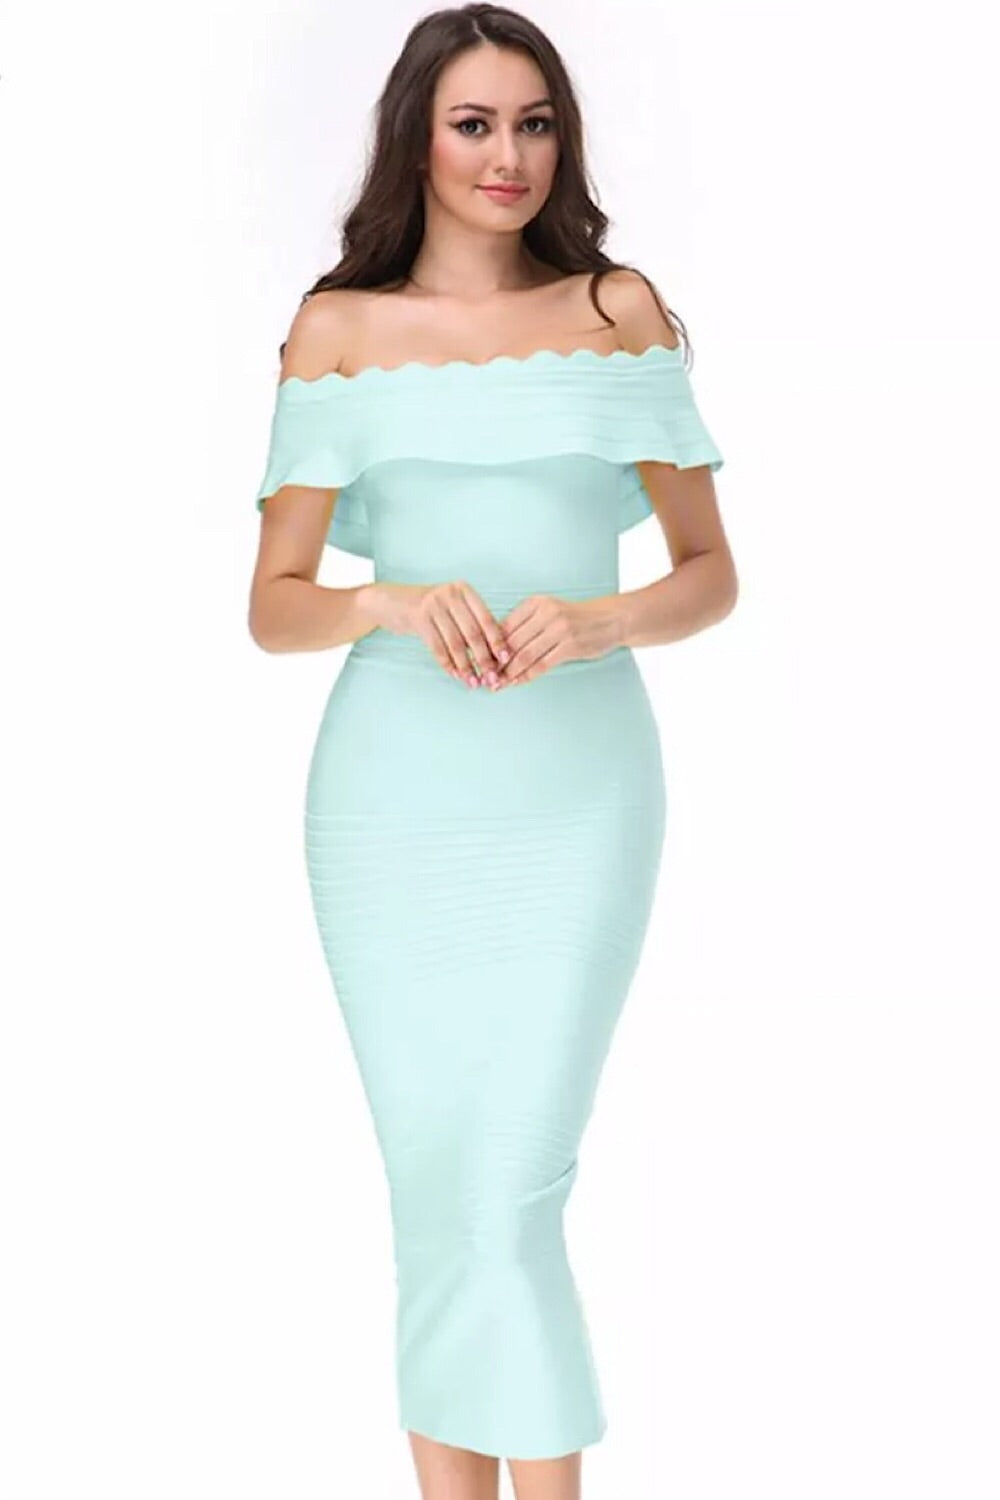 Kiki Aqua Bandage Dress